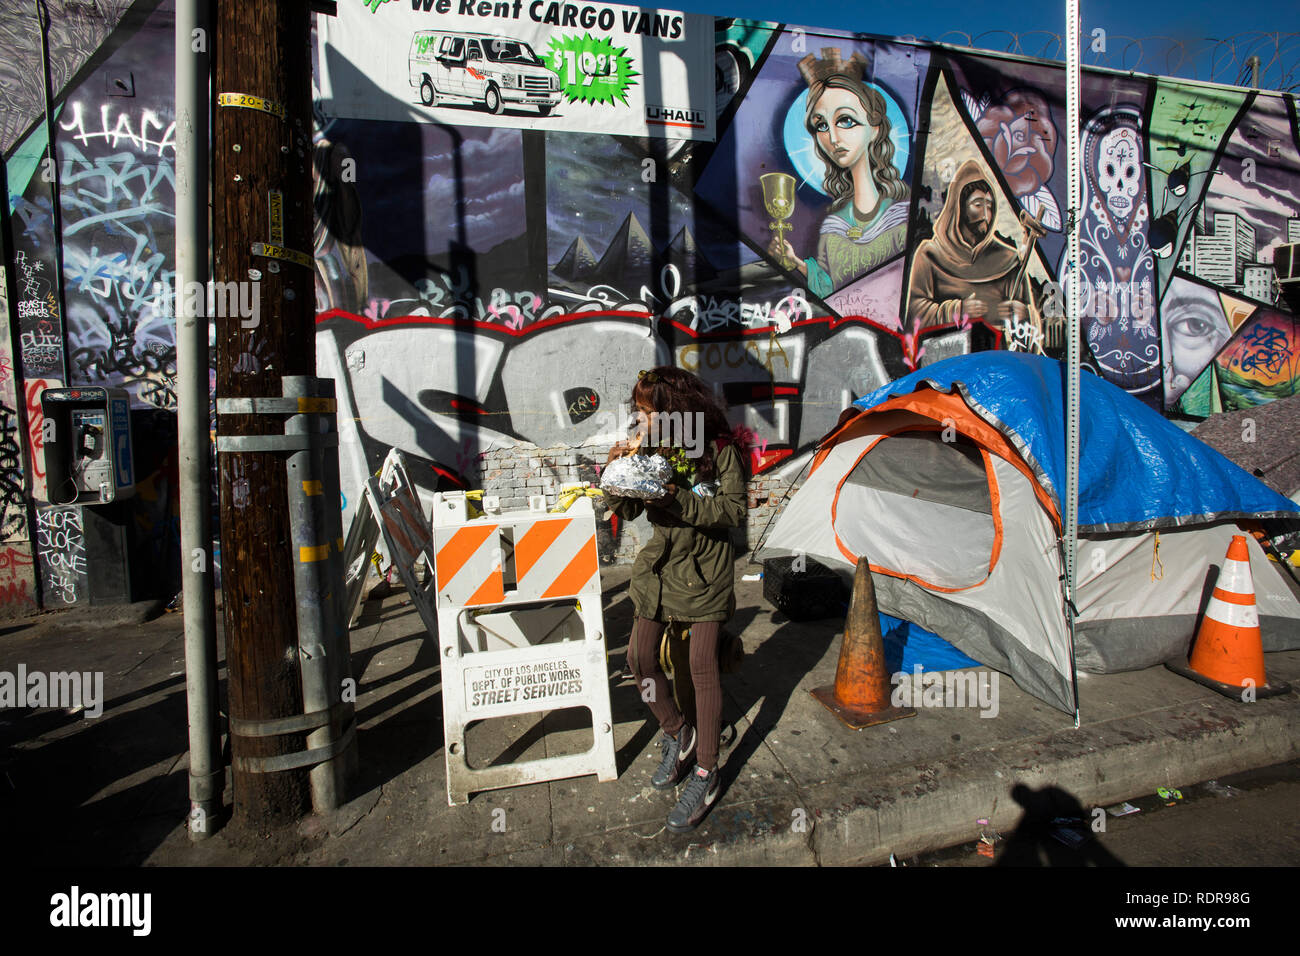 Christmas Los Angeles 2019 7th Street, Skid Row on Christmas Day 2019, Los Angeles